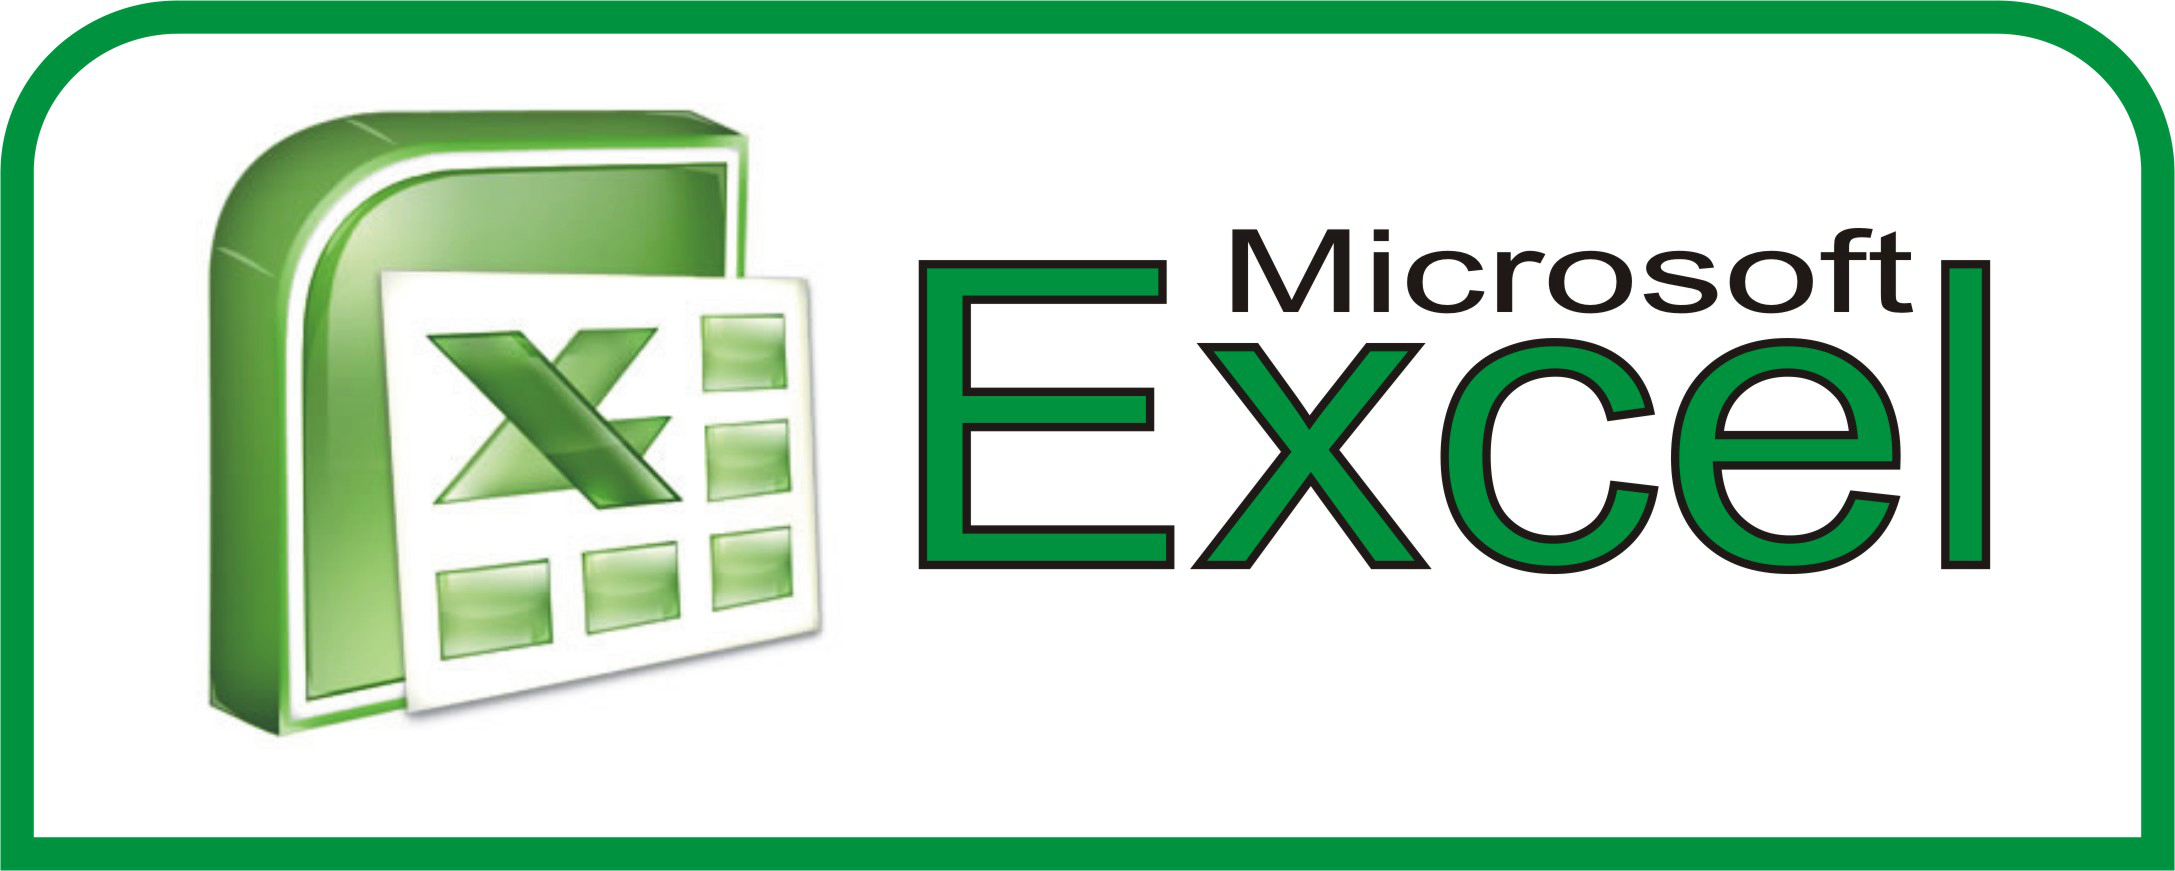 Ediblewildsus  Stunning  Excel Shortcuts You Probably Didnt Know About  Techdissected With Fair The Extension Of Ms Excel Is Besides Shortcut For Autofill In Excel Furthermore What Is A Excel Worksheet With Amazing Excel Classes Free Also Pivot Table Formula In Excel In Addition Lessons Learned Template Excel And Excel Normsinv As Well As Remove Password From Excel Workbook Additionally How To Find Percentages In Excel From Techdissectedcom With Ediblewildsus  Fair  Excel Shortcuts You Probably Didnt Know About  Techdissected With Amazing The Extension Of Ms Excel Is Besides Shortcut For Autofill In Excel Furthermore What Is A Excel Worksheet And Stunning Excel Classes Free Also Pivot Table Formula In Excel In Addition Lessons Learned Template Excel From Techdissectedcom